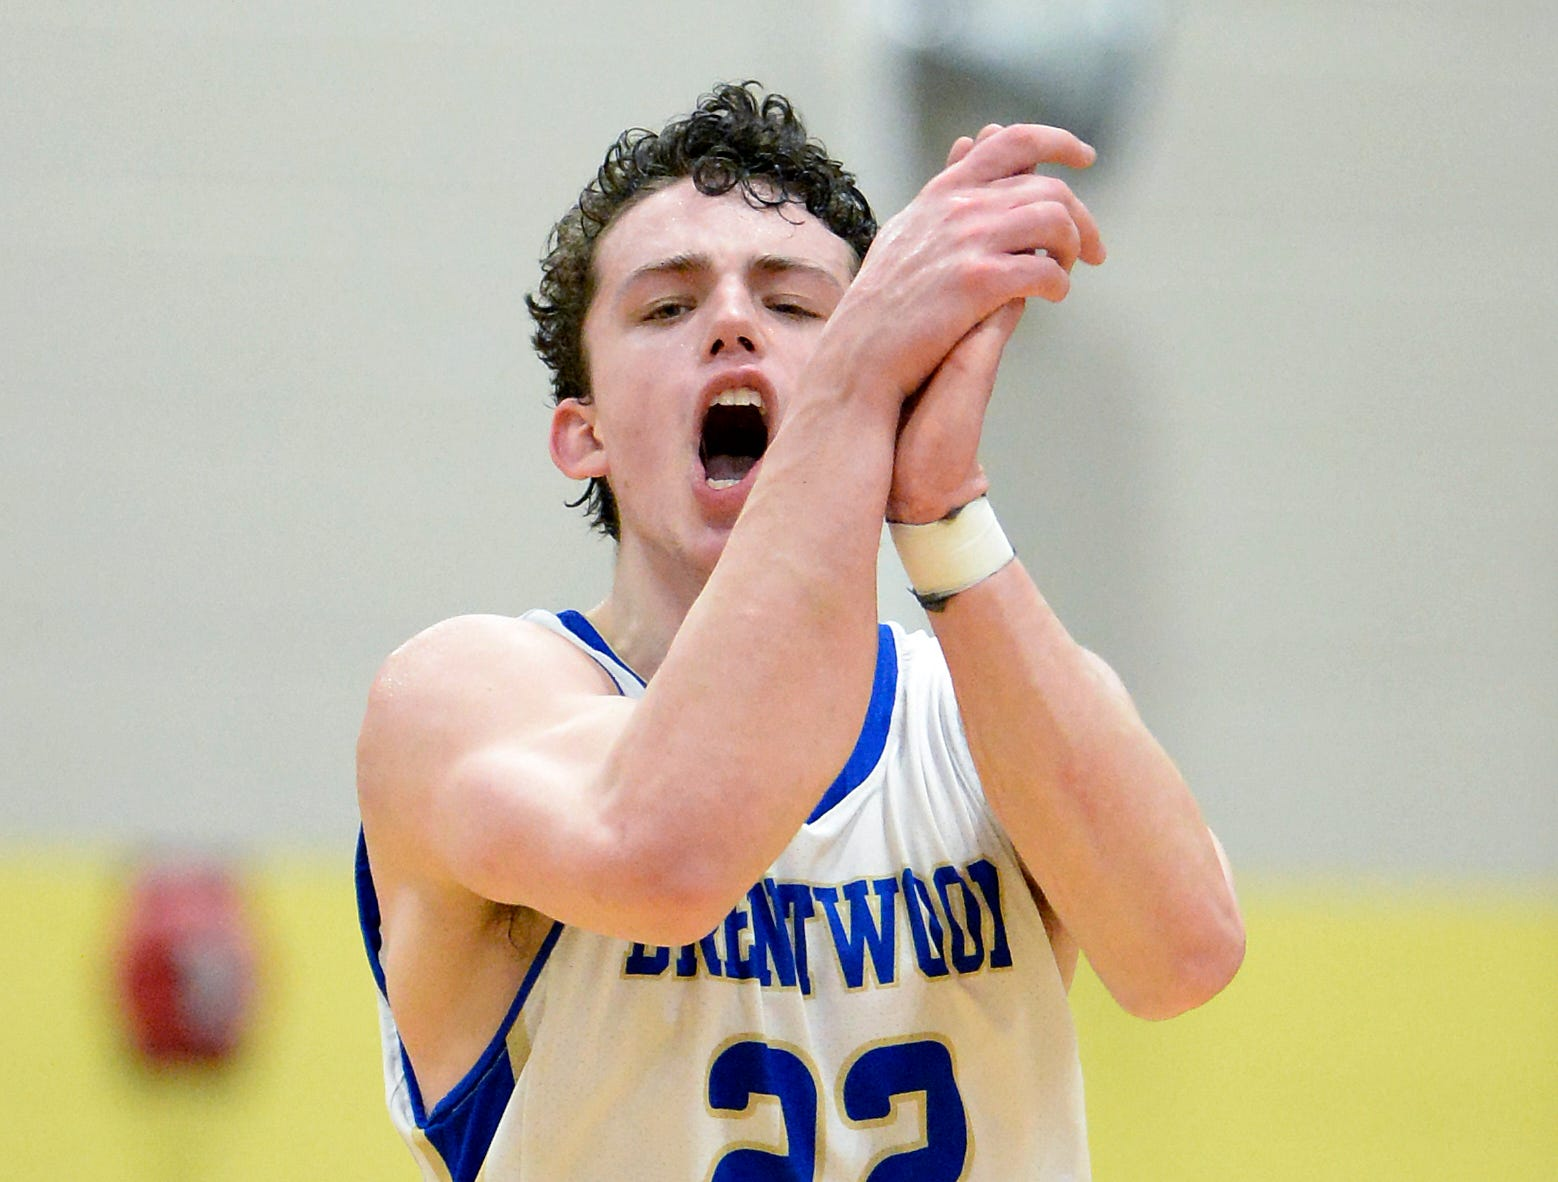 Brentwood guard Harry Lackey (22) celebrates after making a basket against Franklin during the second half of an High School basketball game Tuesday, Jan. 15, 2019, in Brentwood, Tenn. Franklin won 53-51.